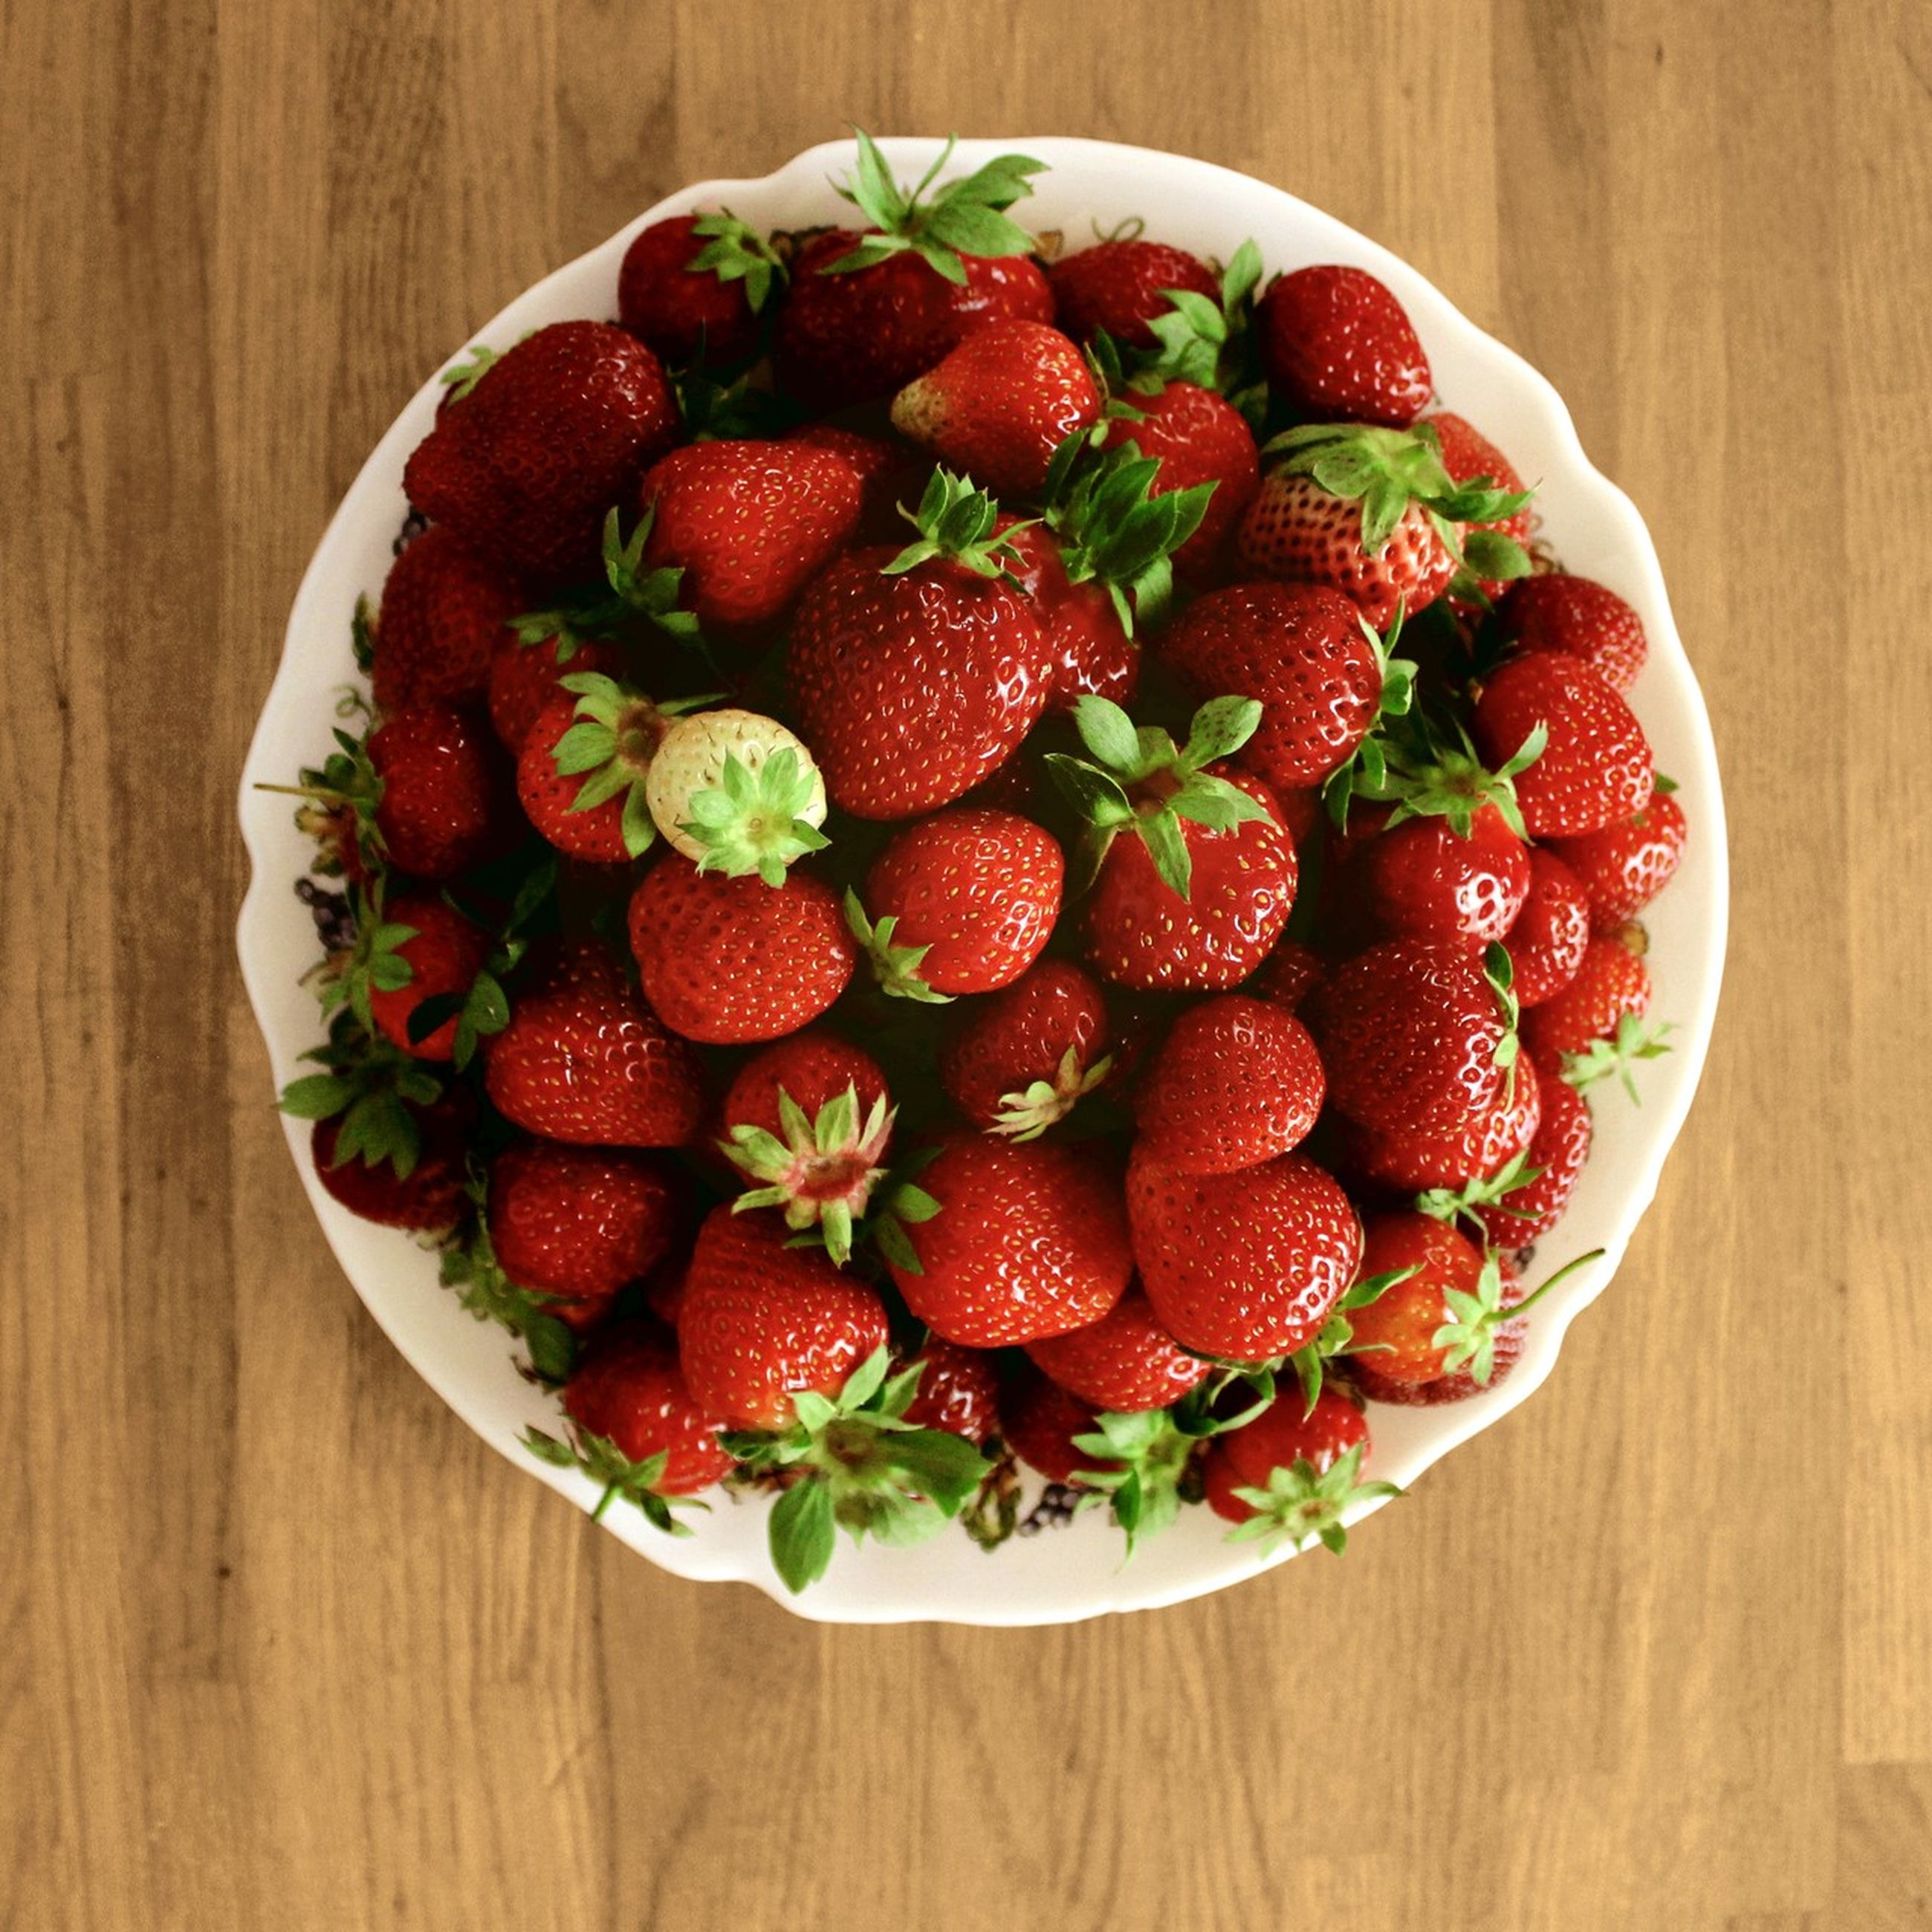 food and drink, food, freshness, indoors, fruit, healthy eating, table, still life, directly above, high angle view, strawberry, red, wood - material, ready-to-eat, bowl, plate, raspberry, ripe, juicy, close-up